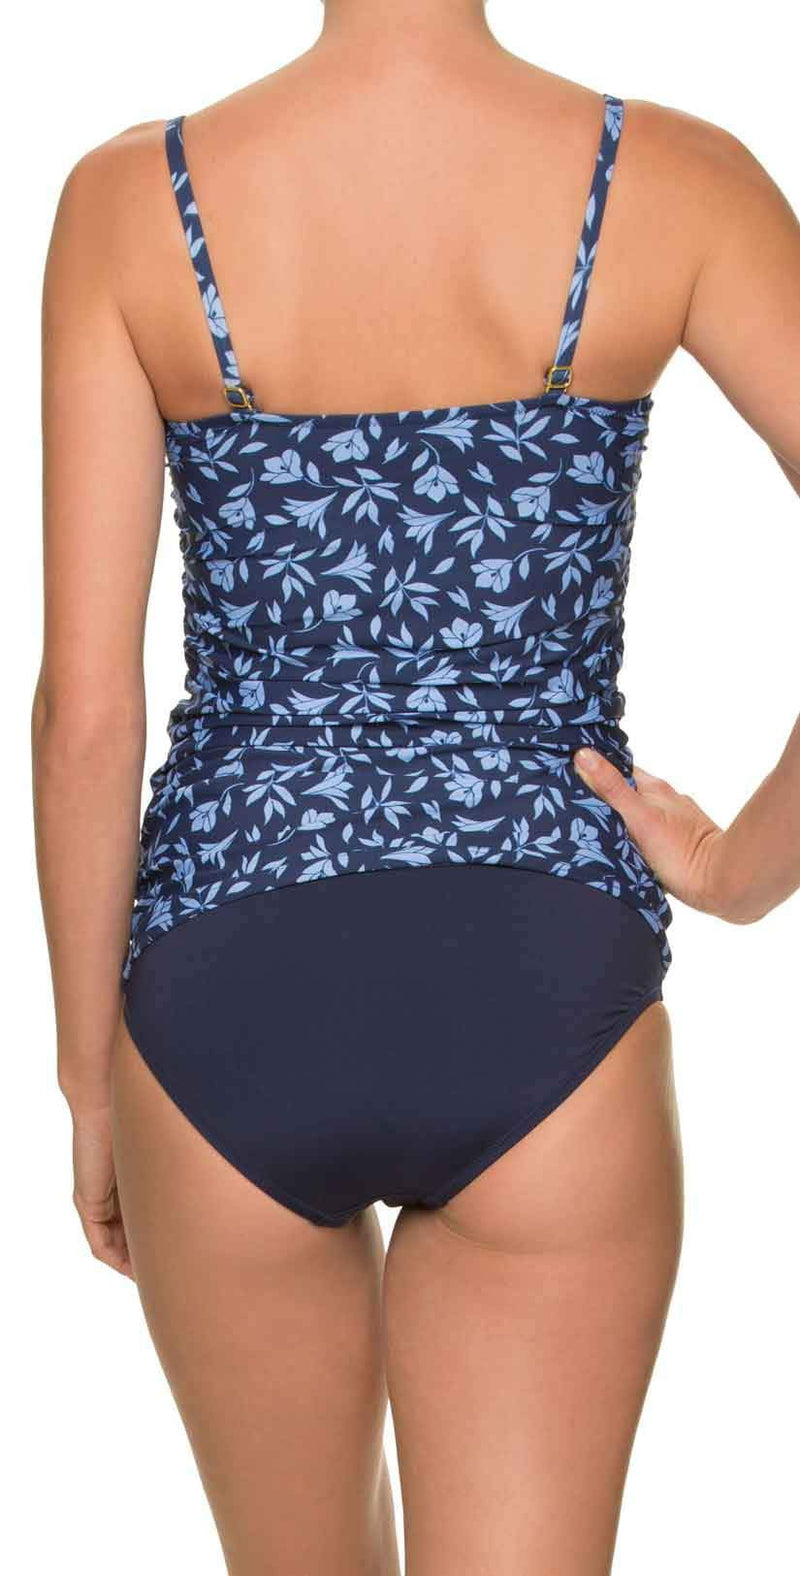 Draper James for Helen Jon Classic Hipster Bikini Bottom in Blue: